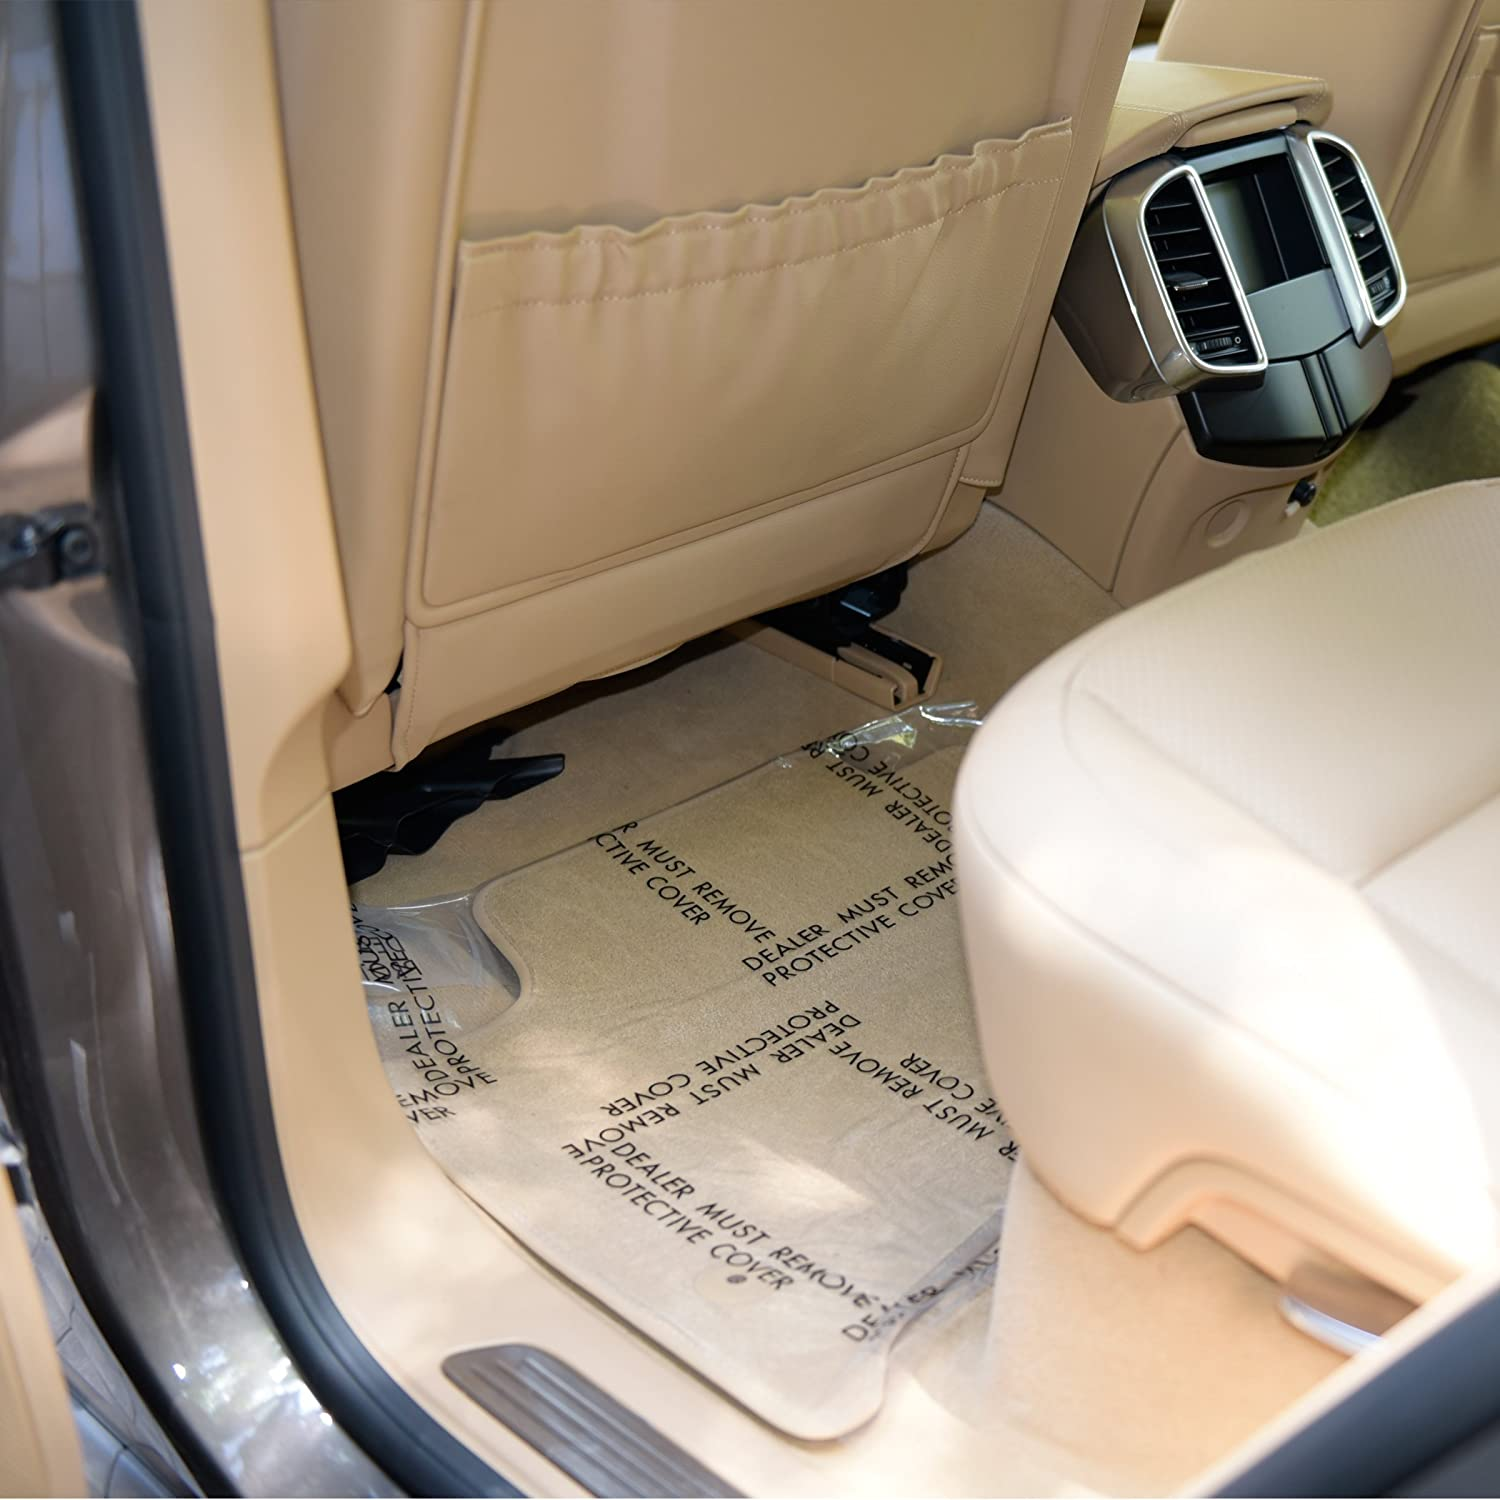 24 x 600 Sticky Disposable Car Floor Mats Protector Cover Sheets CARCAREZ Clear Adhesive Car Carpet Protector Film Roll